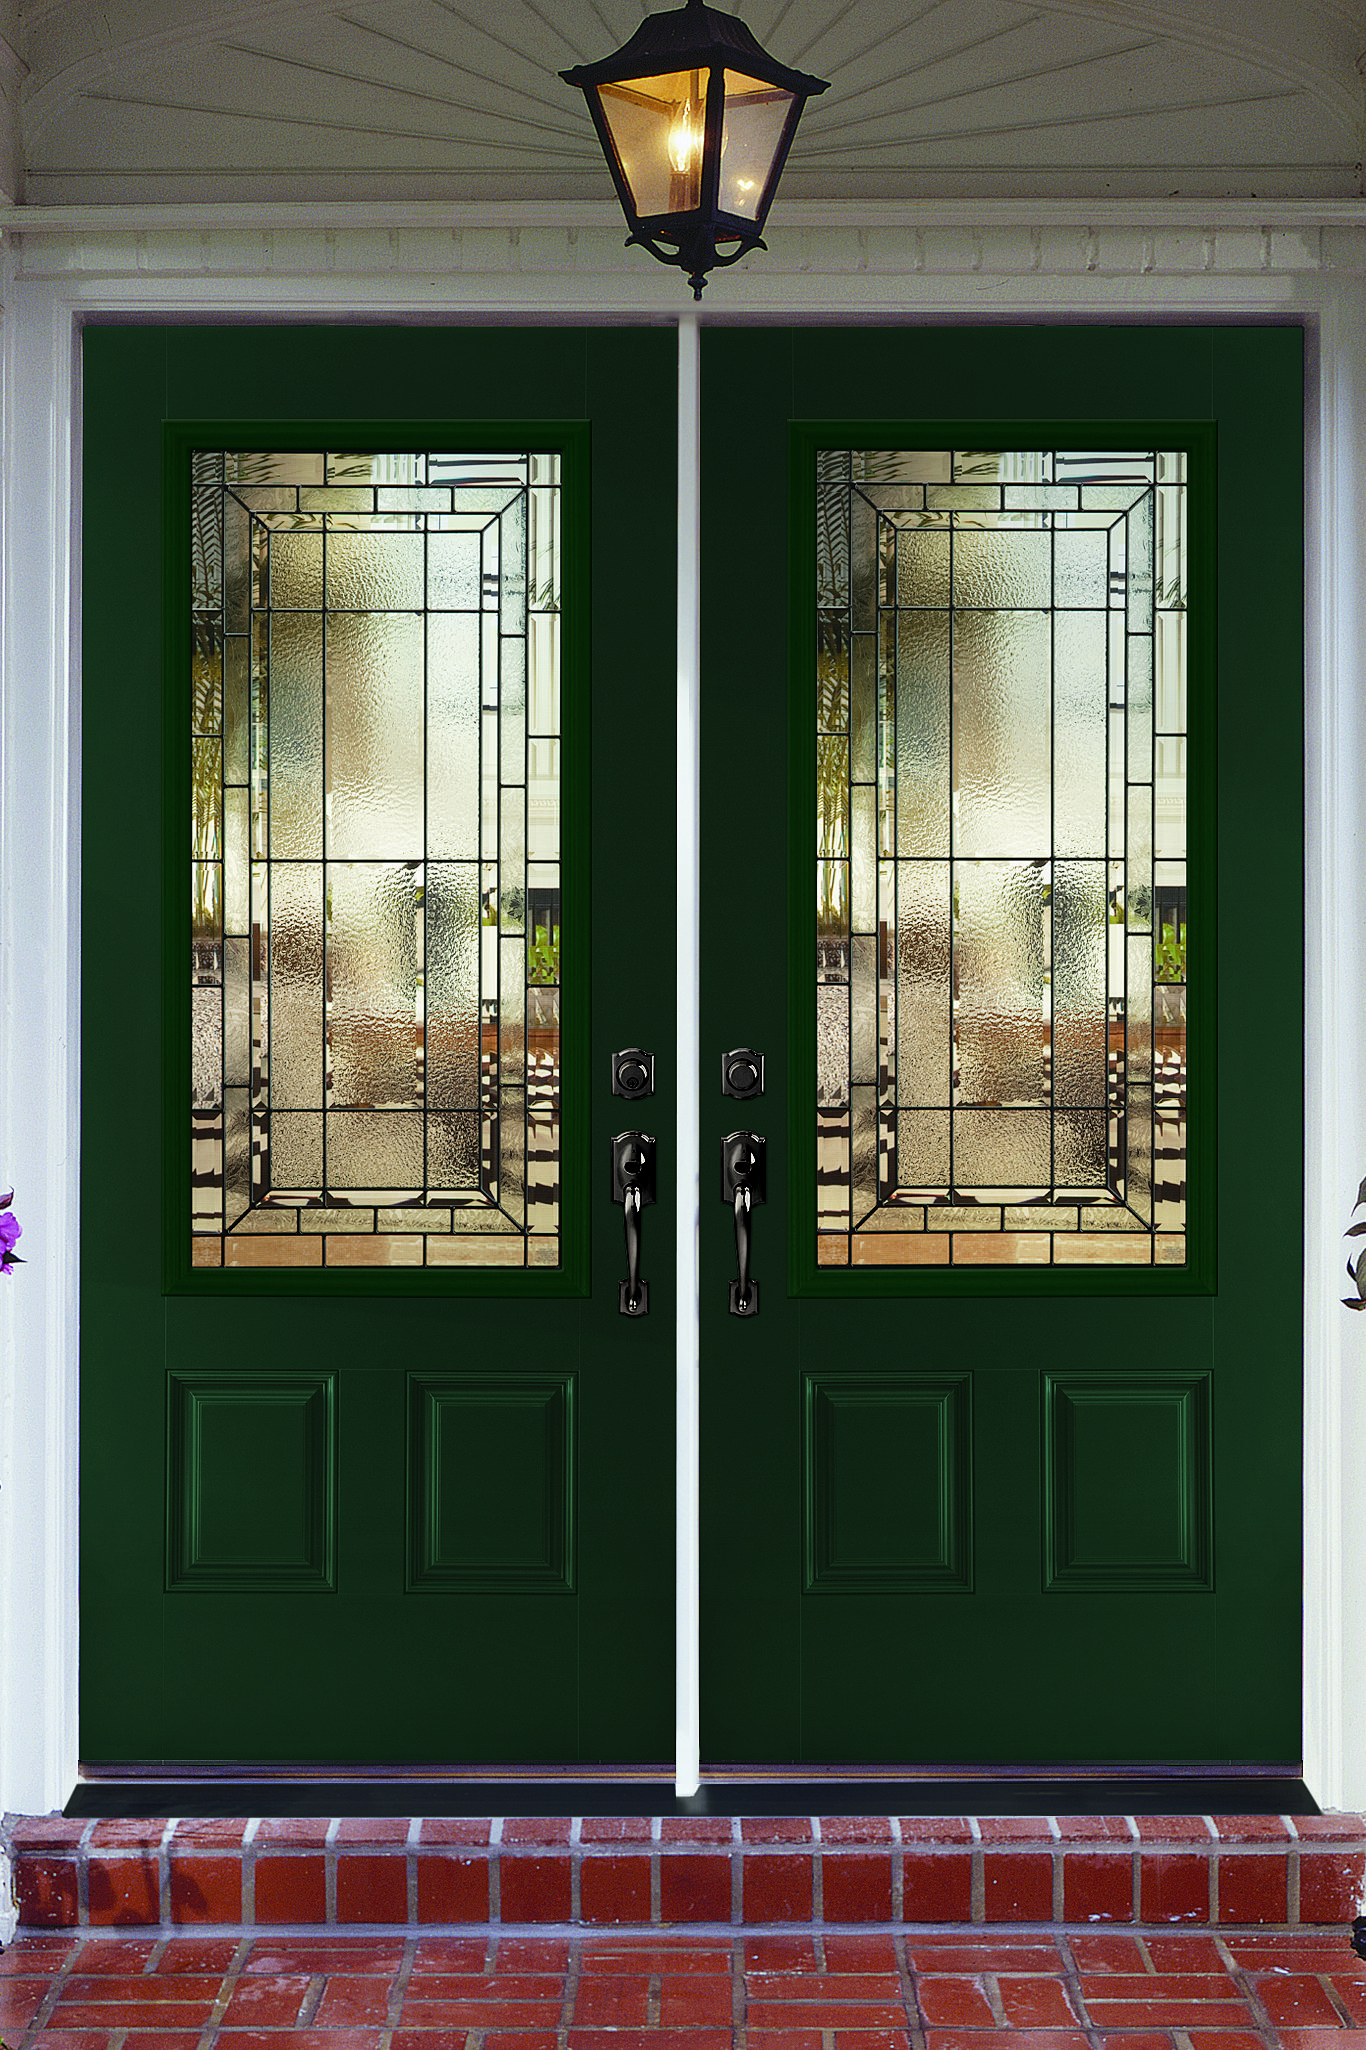 Nothing says welcome home quite like a beautiful front door get started on your entryway makeover with masonite theres so many designs and styles to